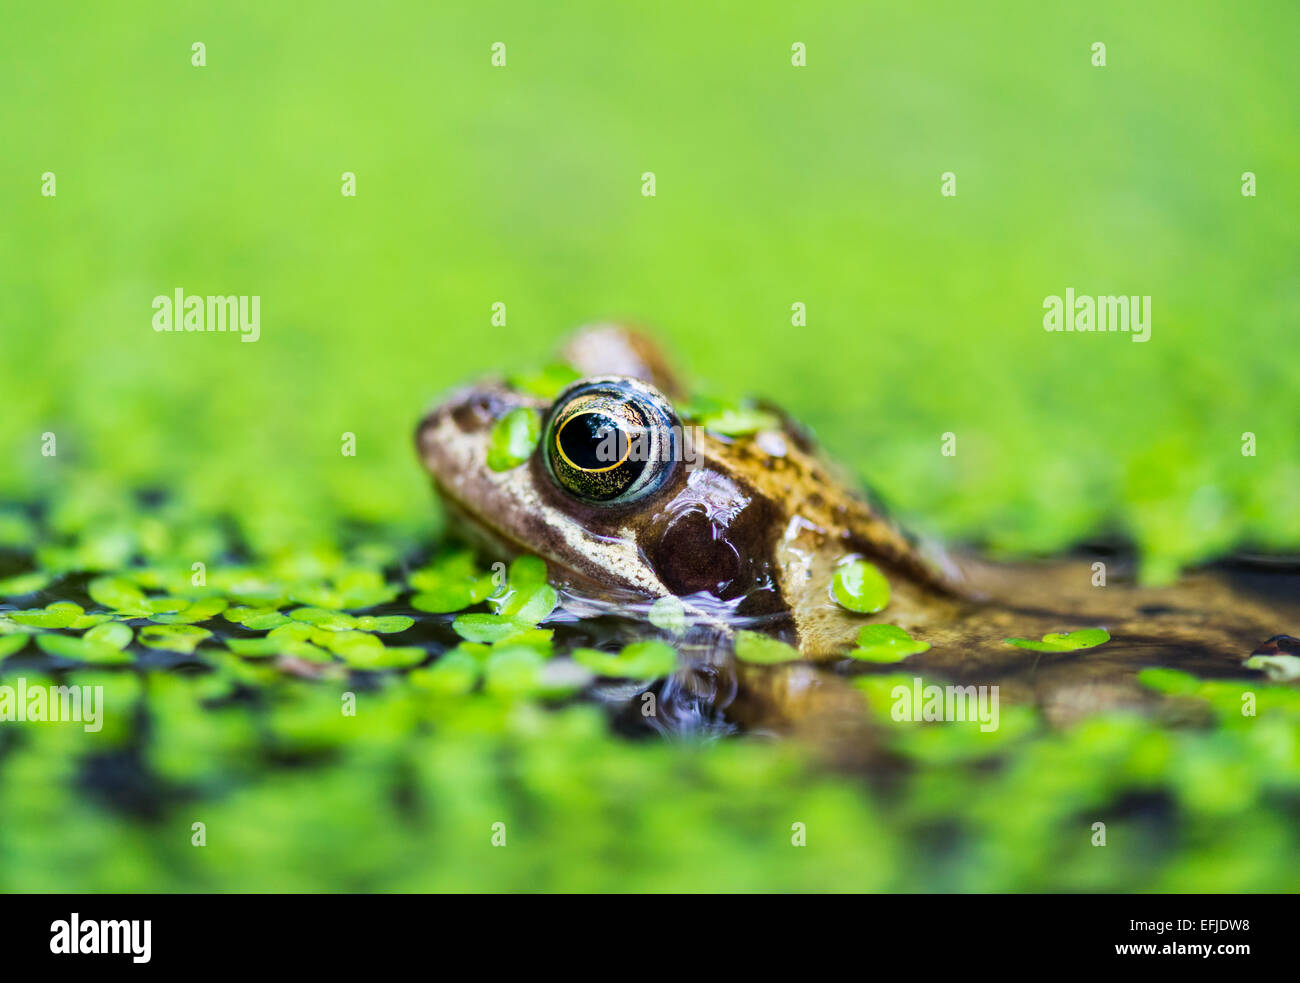 Common frog (Rana temporaria) in garden pond covered in duckweed - Stock Image